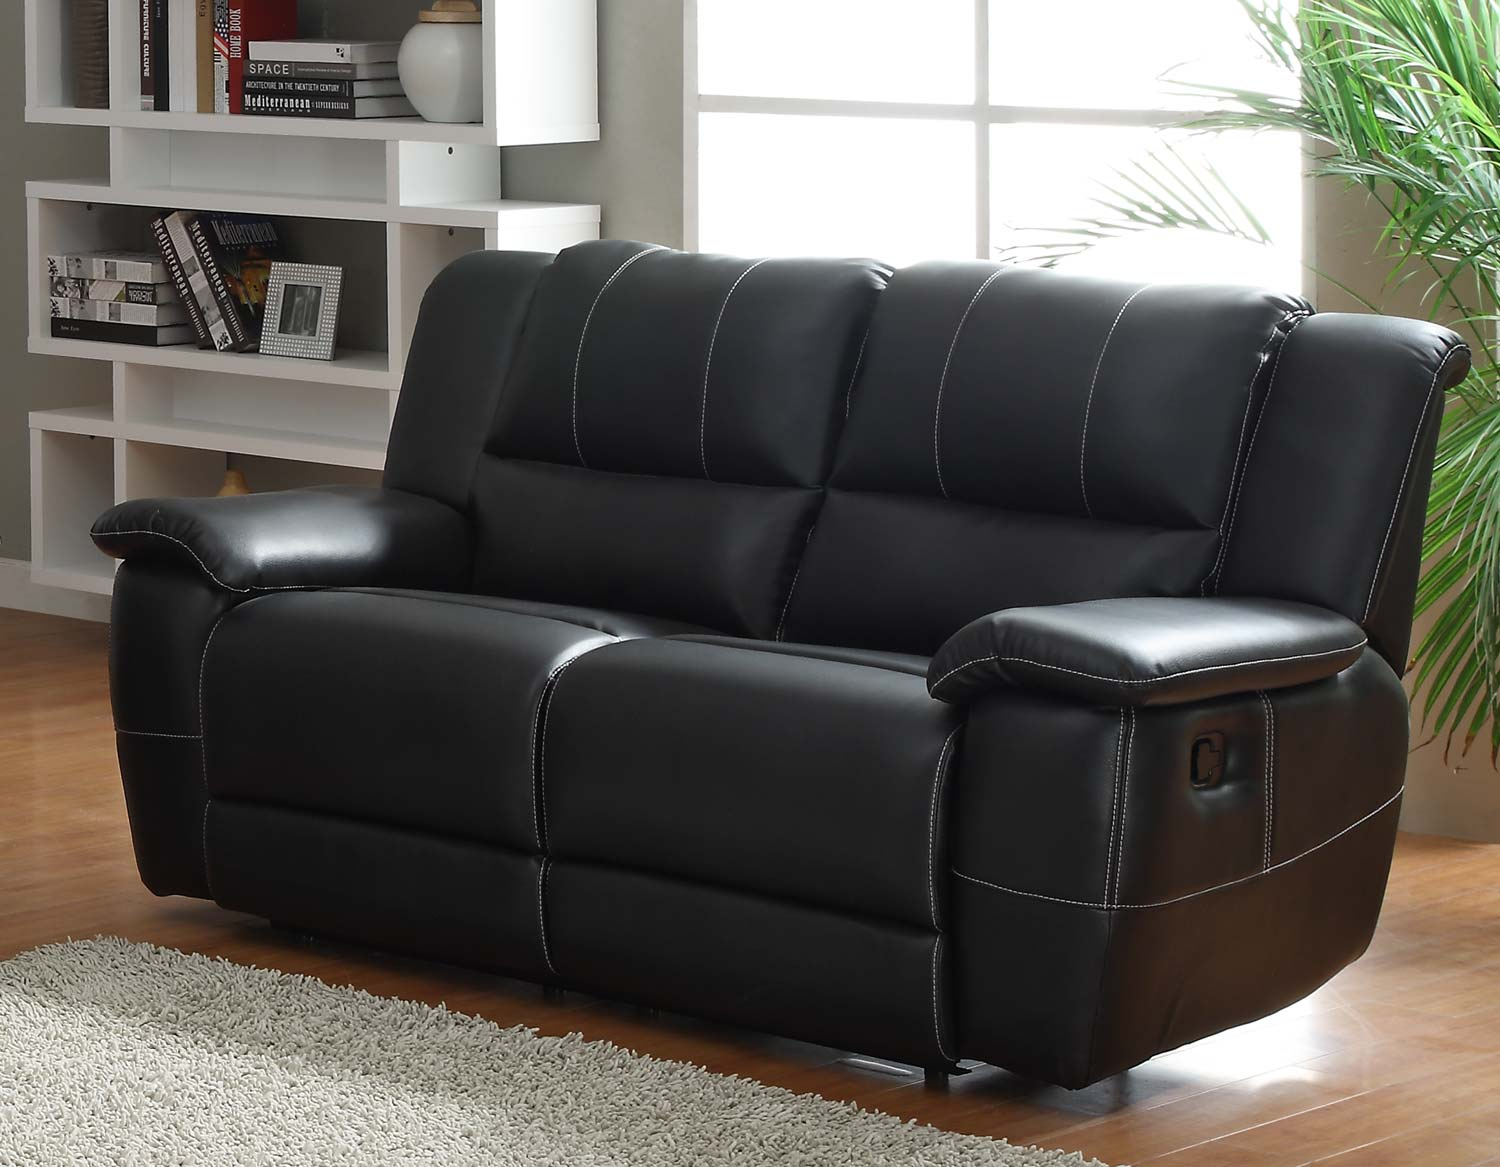 Homelegance cantrell reclining sofa set black bonded leather match u9778blk 3 at Leather loveseat recliners